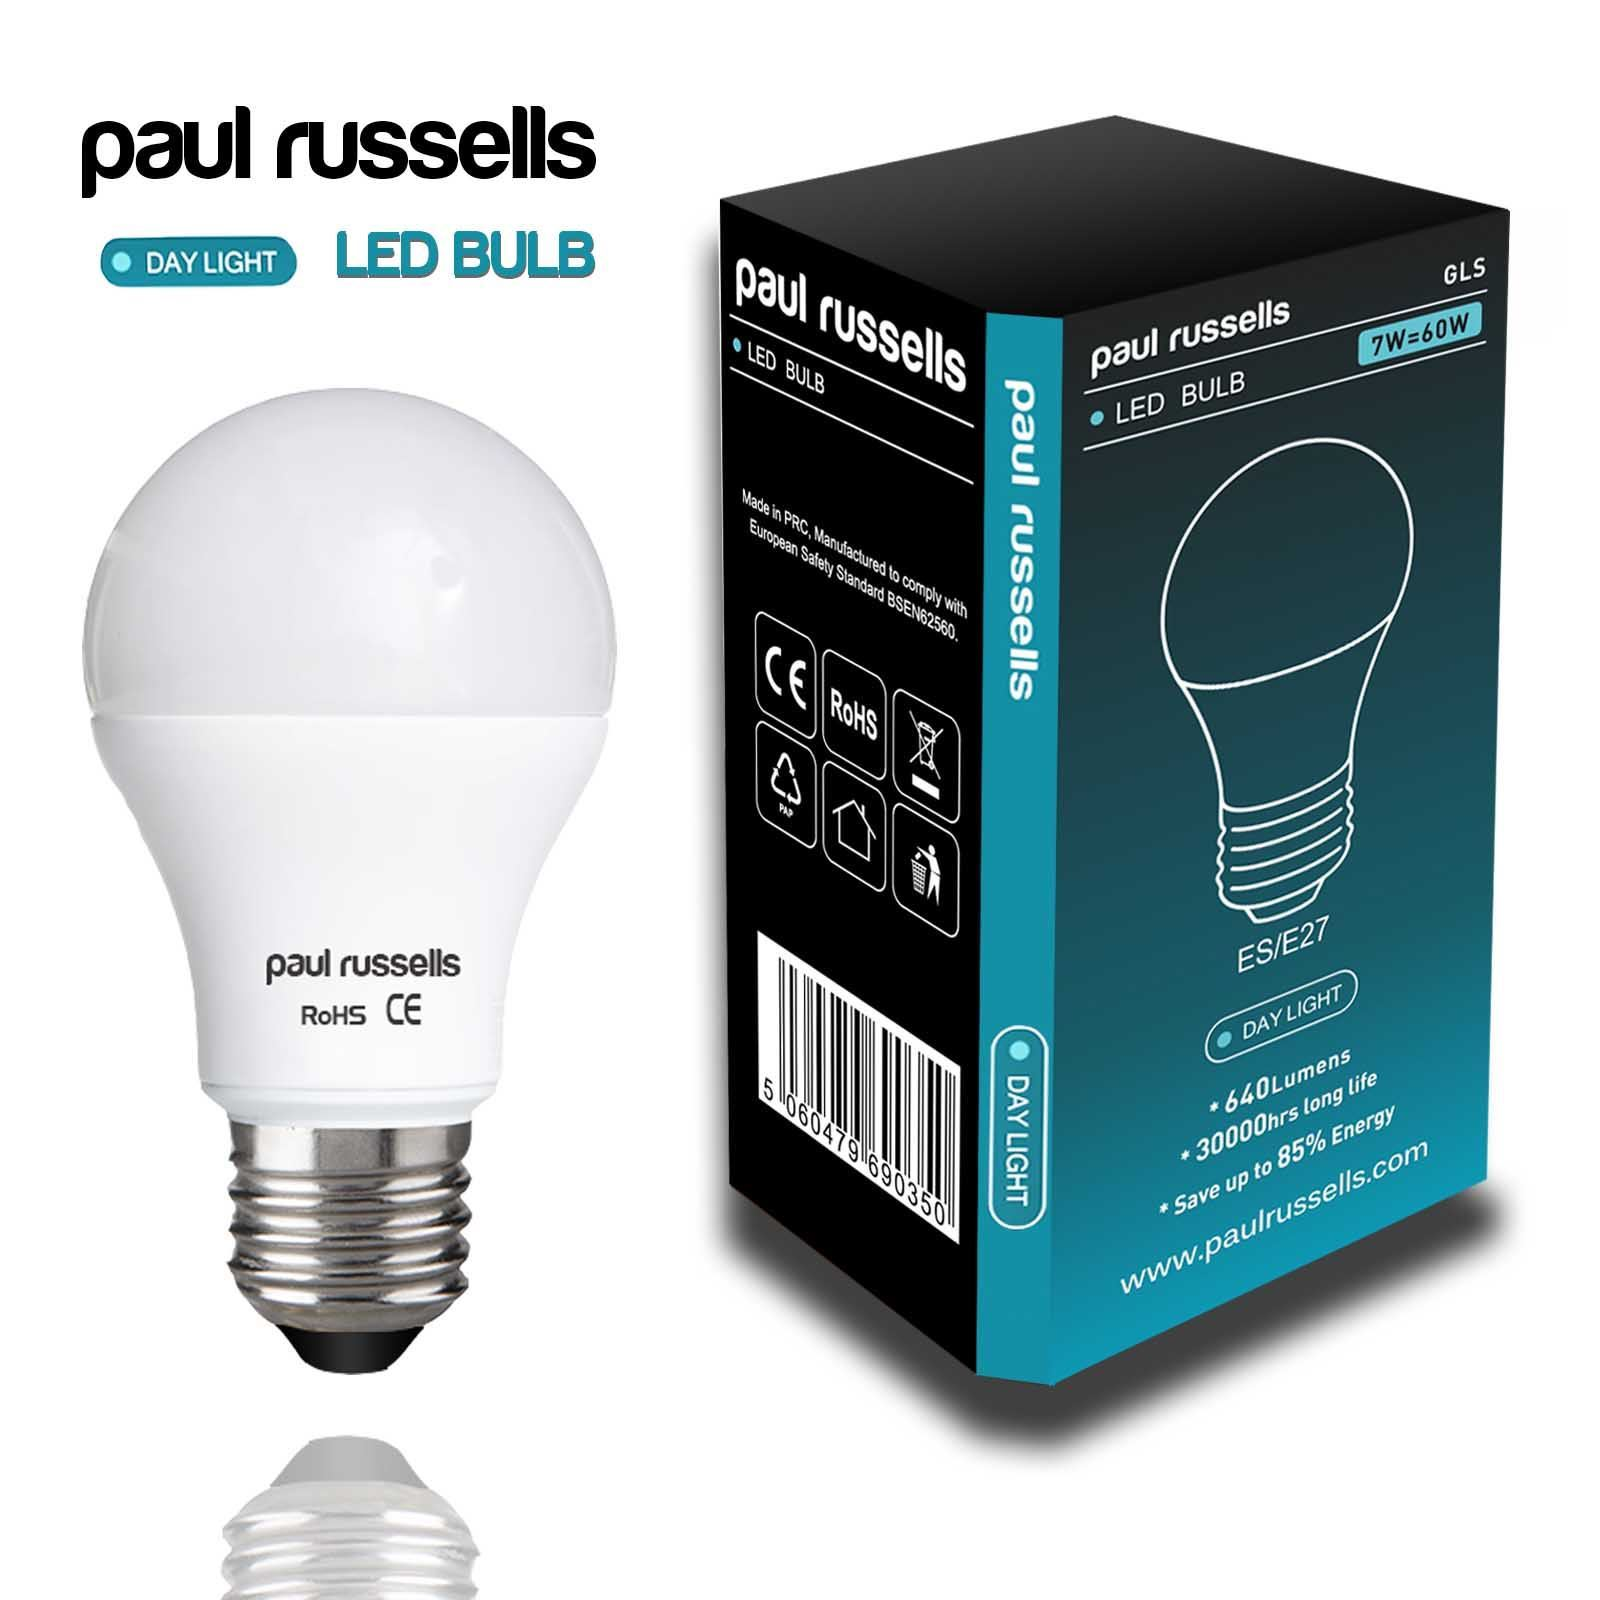 paul russells led light bulbs 3w 4w 5w 7w 12w 25 40 60 100 watt e14 b27 b22 ebay. Black Bedroom Furniture Sets. Home Design Ideas